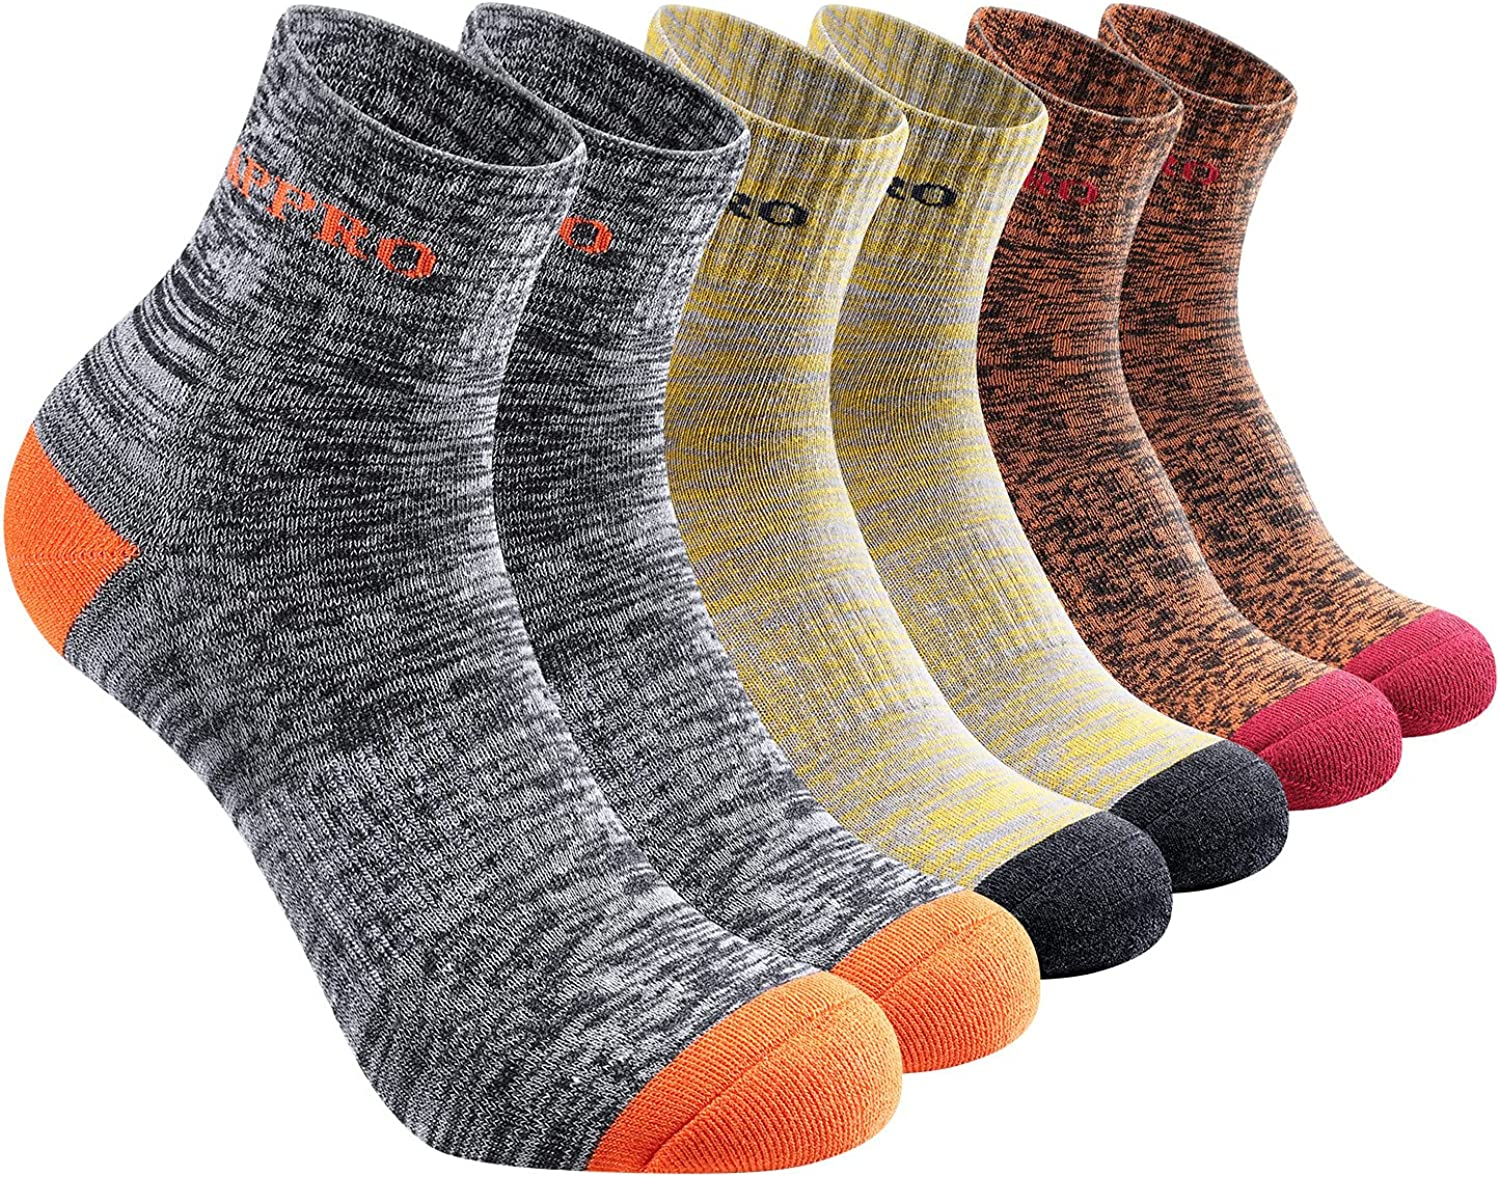 Women's Hiking Socks Large-scale sale Running Multi-pack R Outdoor Athletic discount